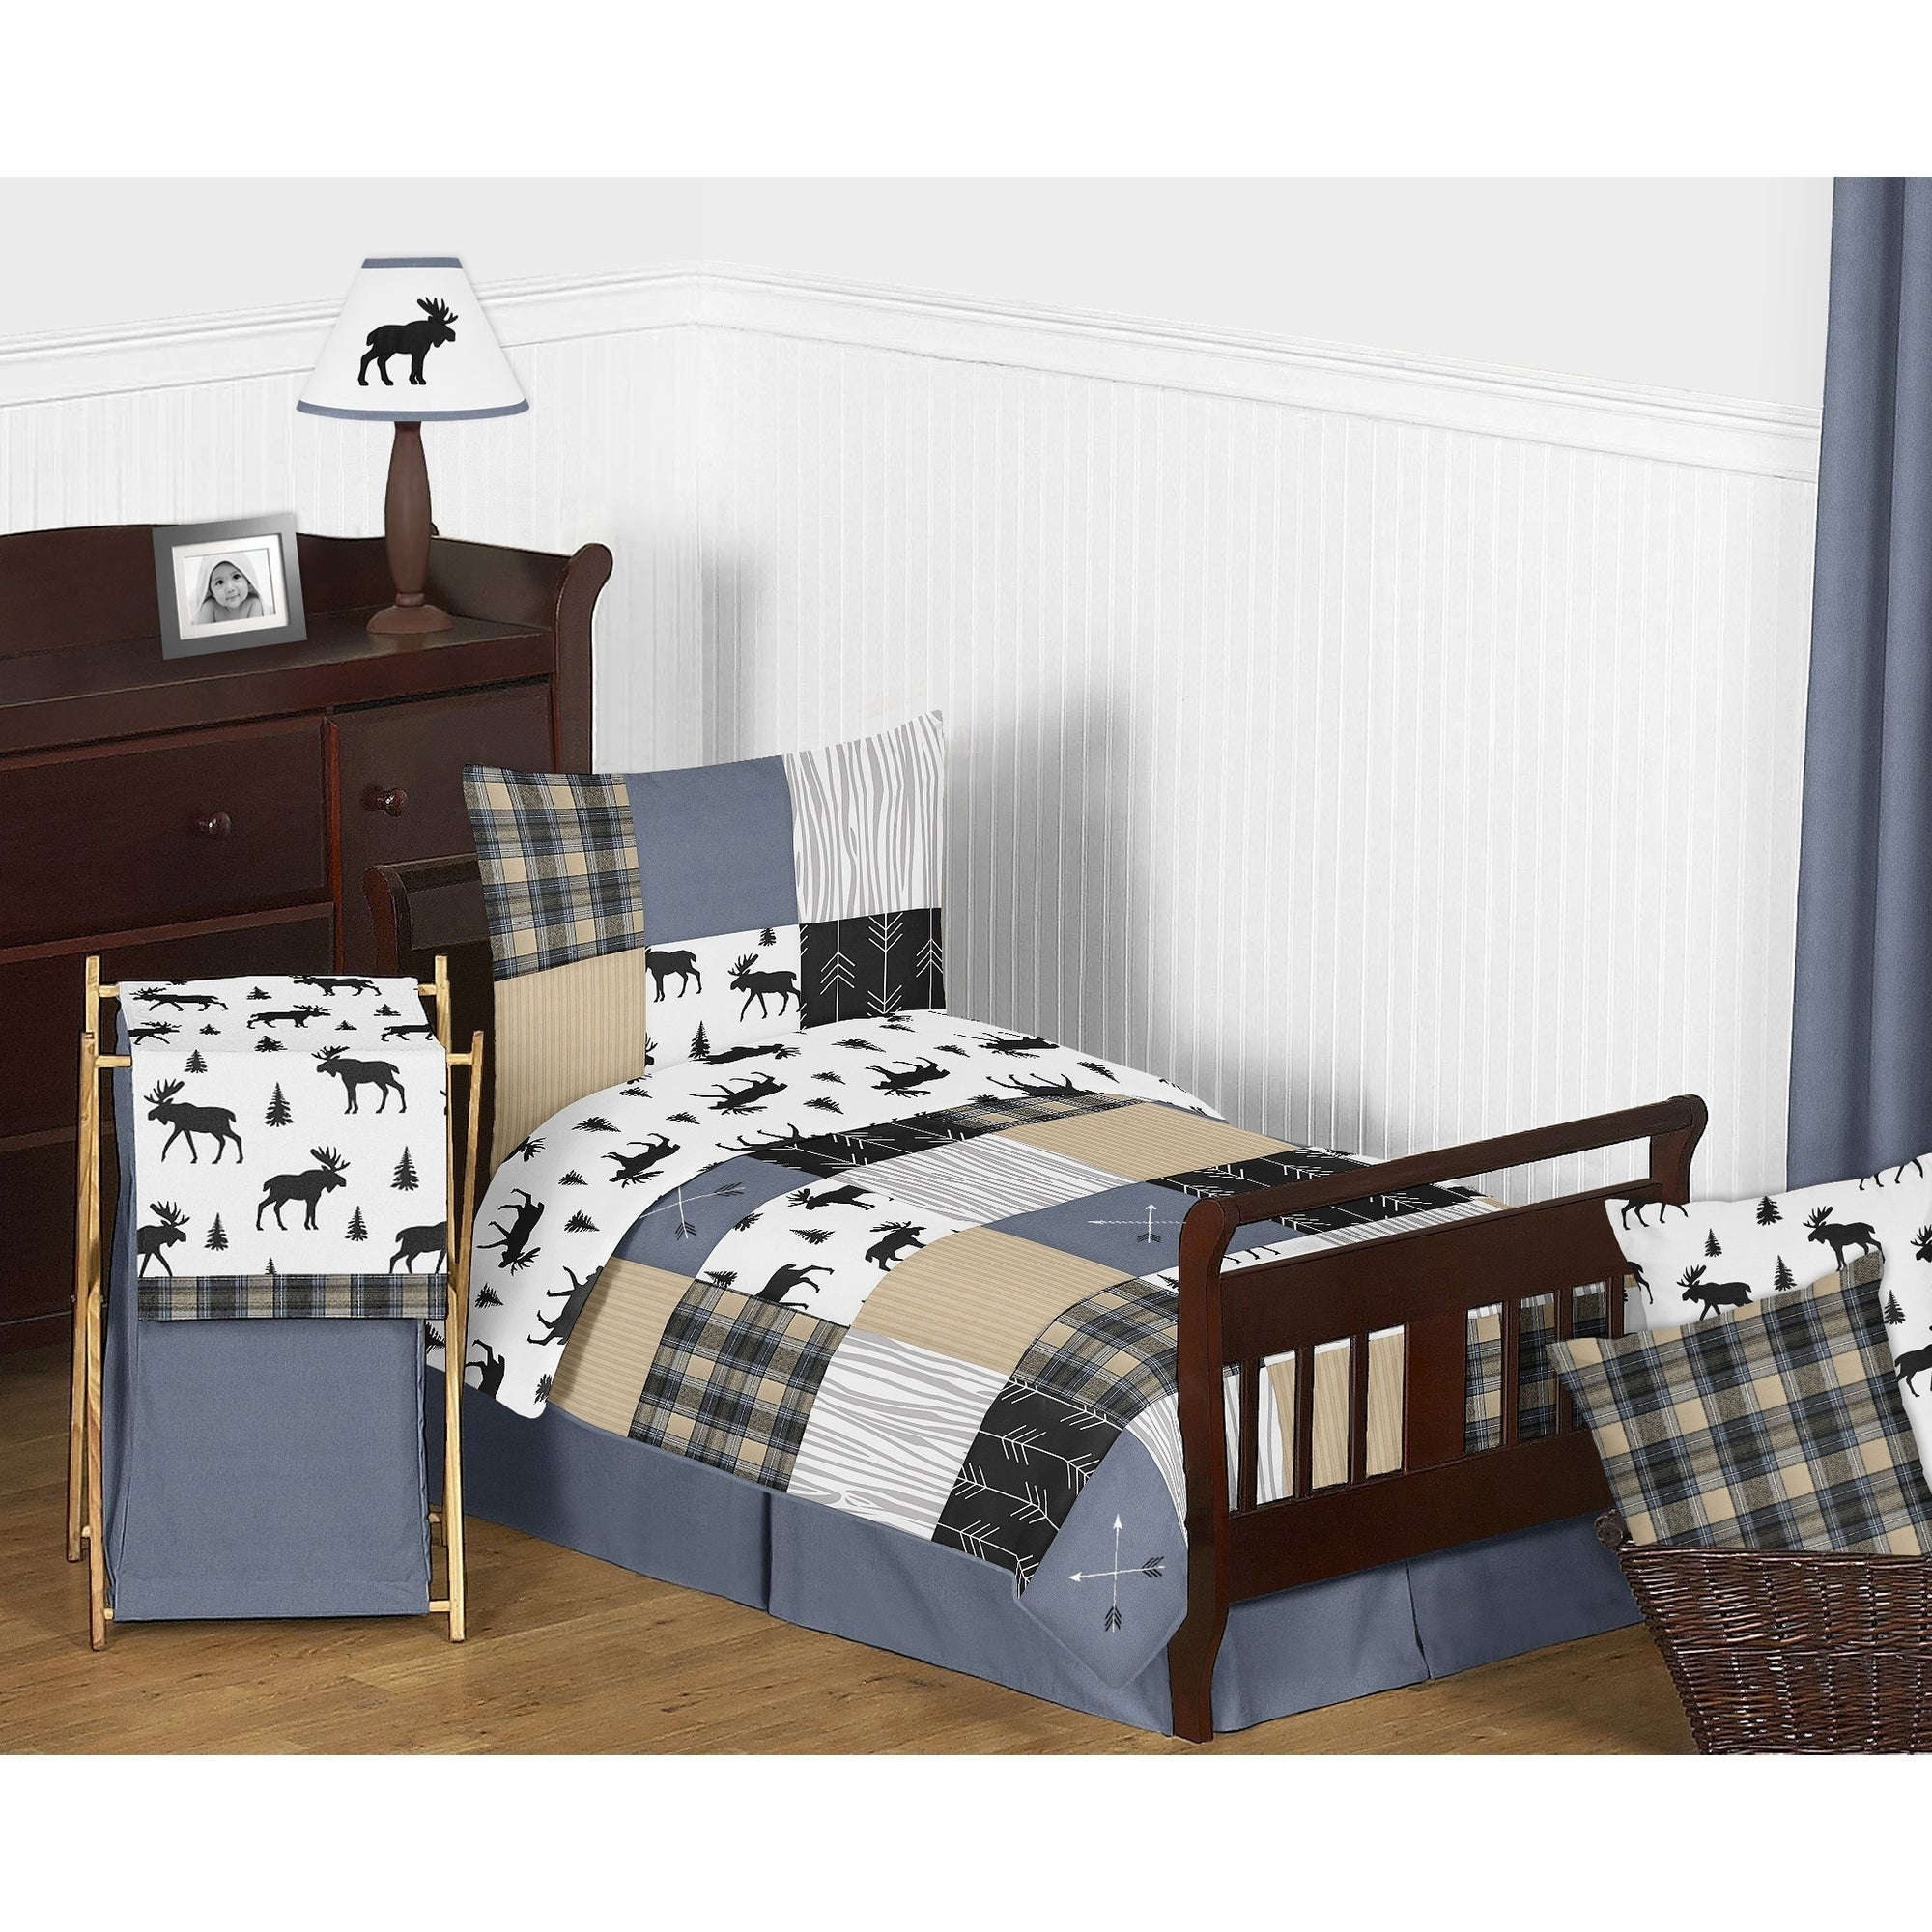 Sweet Jojo Designs Blue Tan Grey Black Woodland Plaid And Arrow Rustic Patch Collection Boy 5 Piece Toddler Size Comforter Set Overstock 27279119